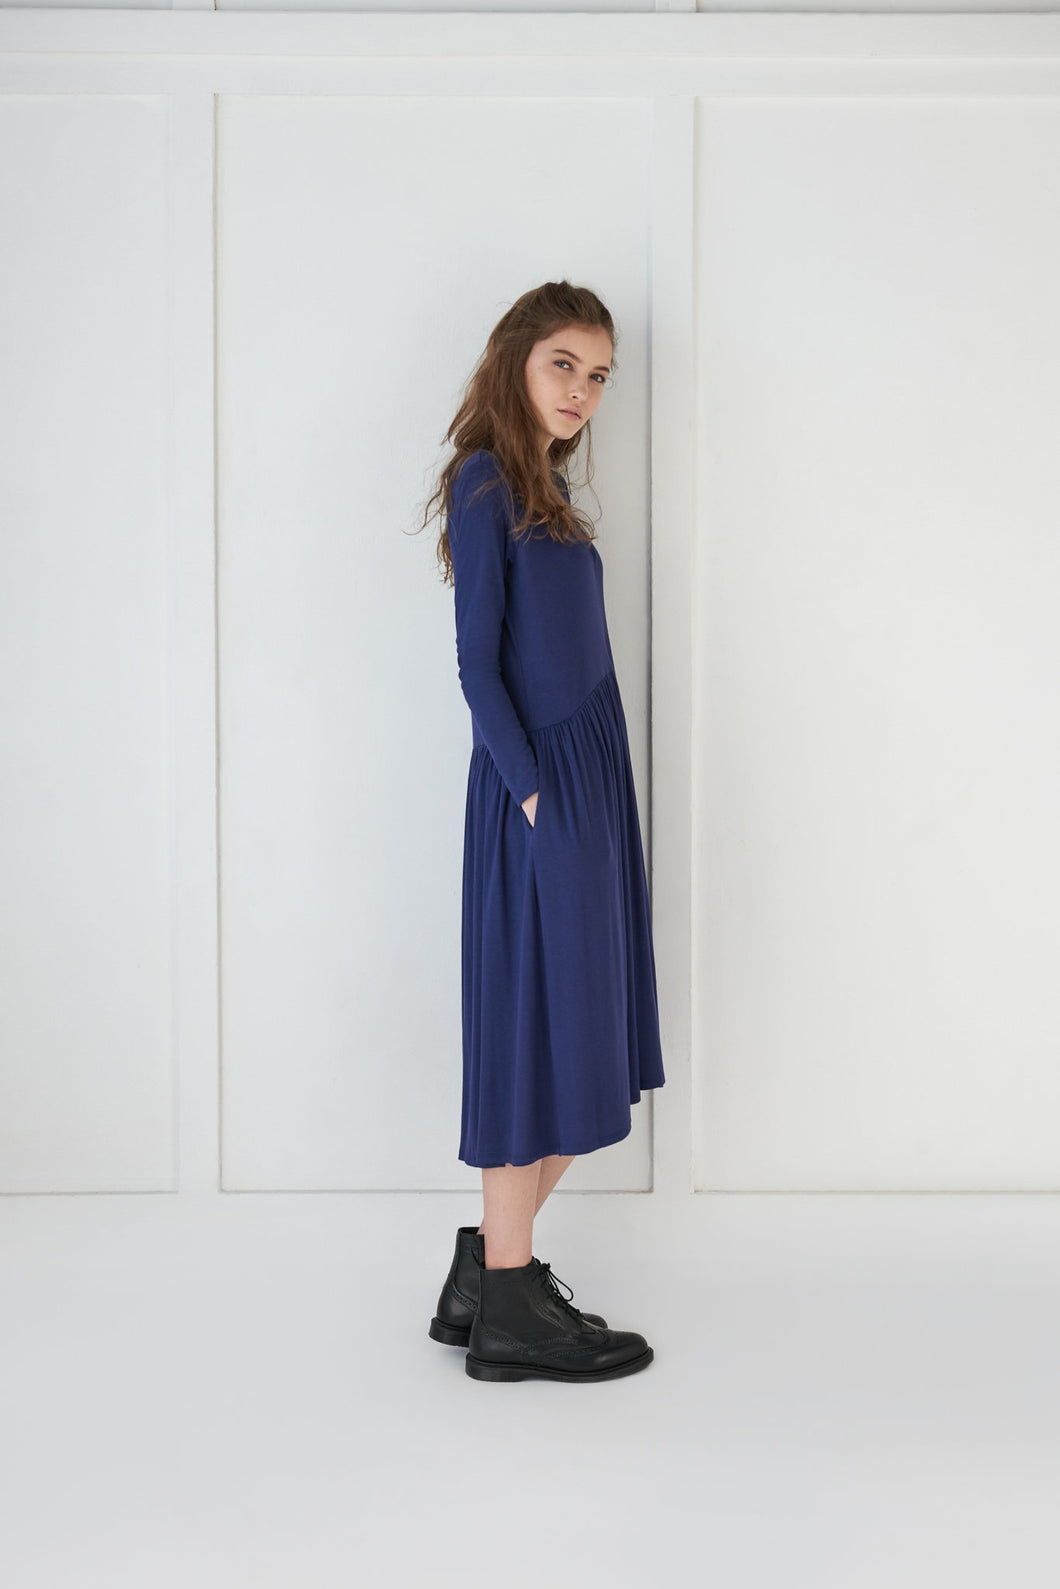 Blue Ribbed Dress - Unaya women's modest tops skirts dresses jewish girls conservative clothing fashion apparel